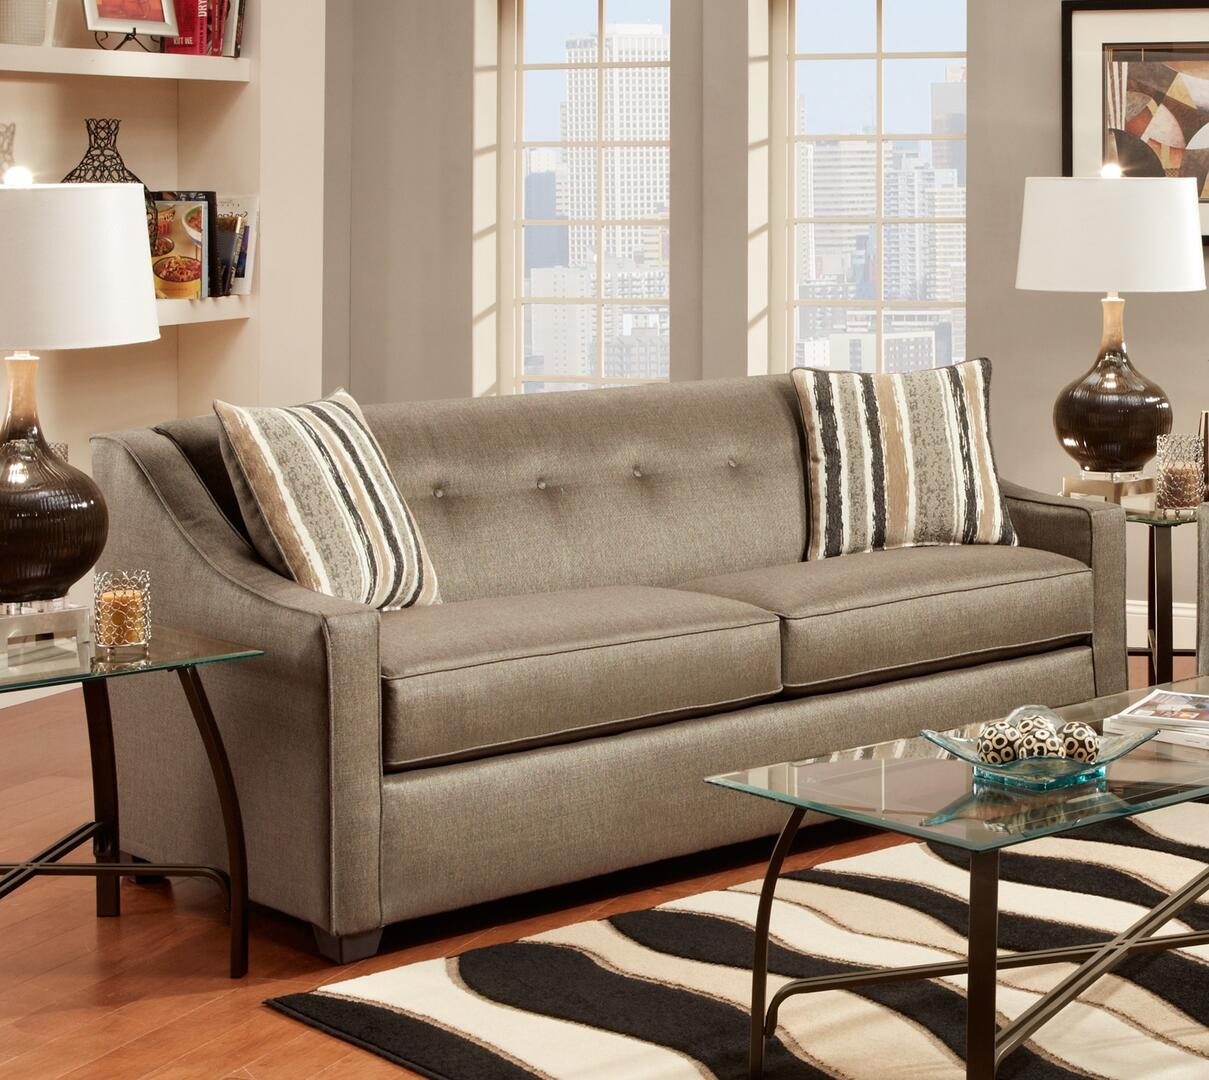 Chelsea Home Furniture 475440s Brittany Sofa With 16 Gauge Border Wire Kiln Dried Hardwood